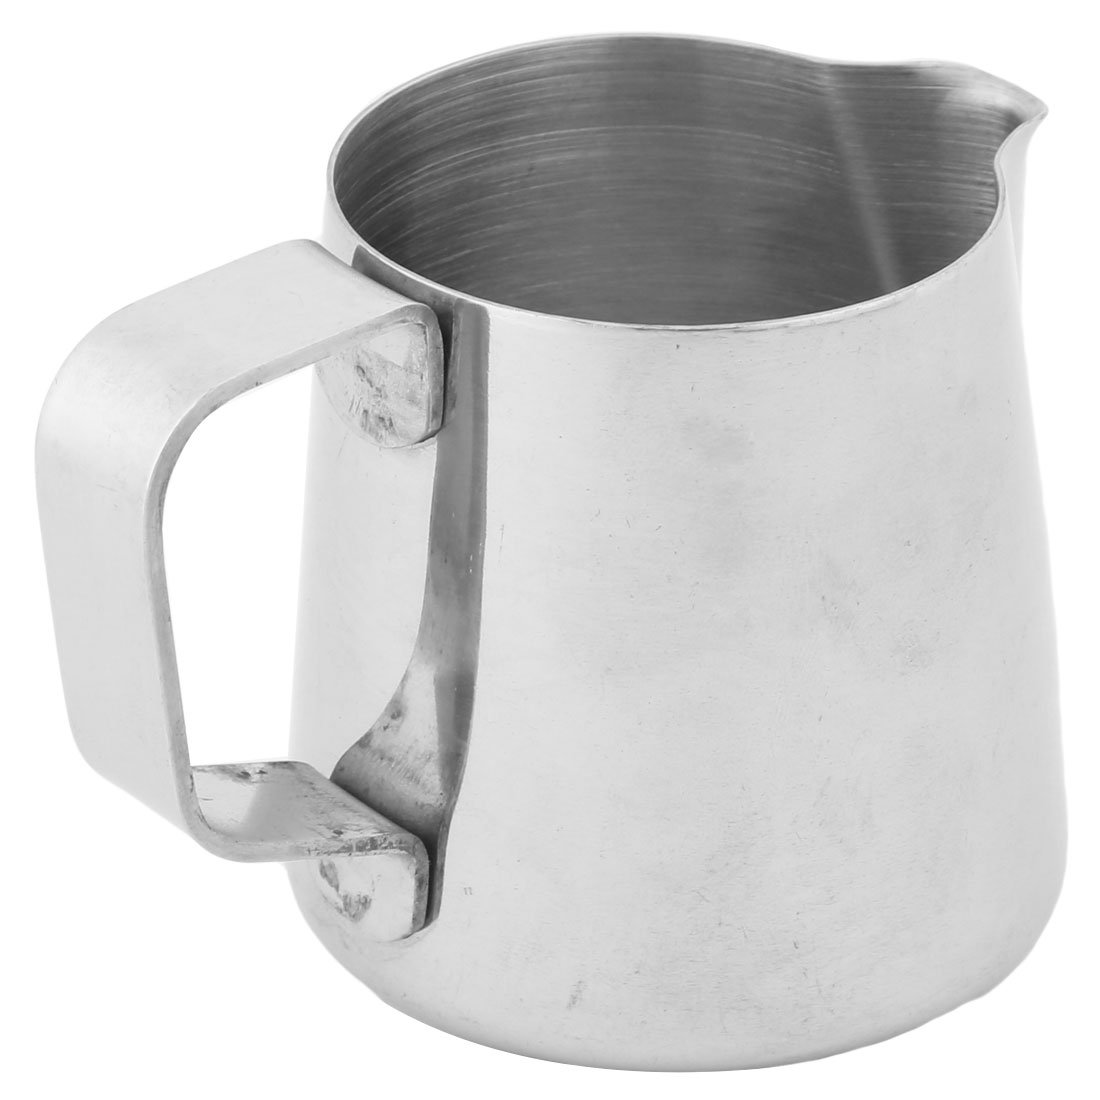 uxcell Metal Household Cafe Milk Tea Coffee Pouring Kettle Pot Holder 150ml Silver Tone a16122200ux0517